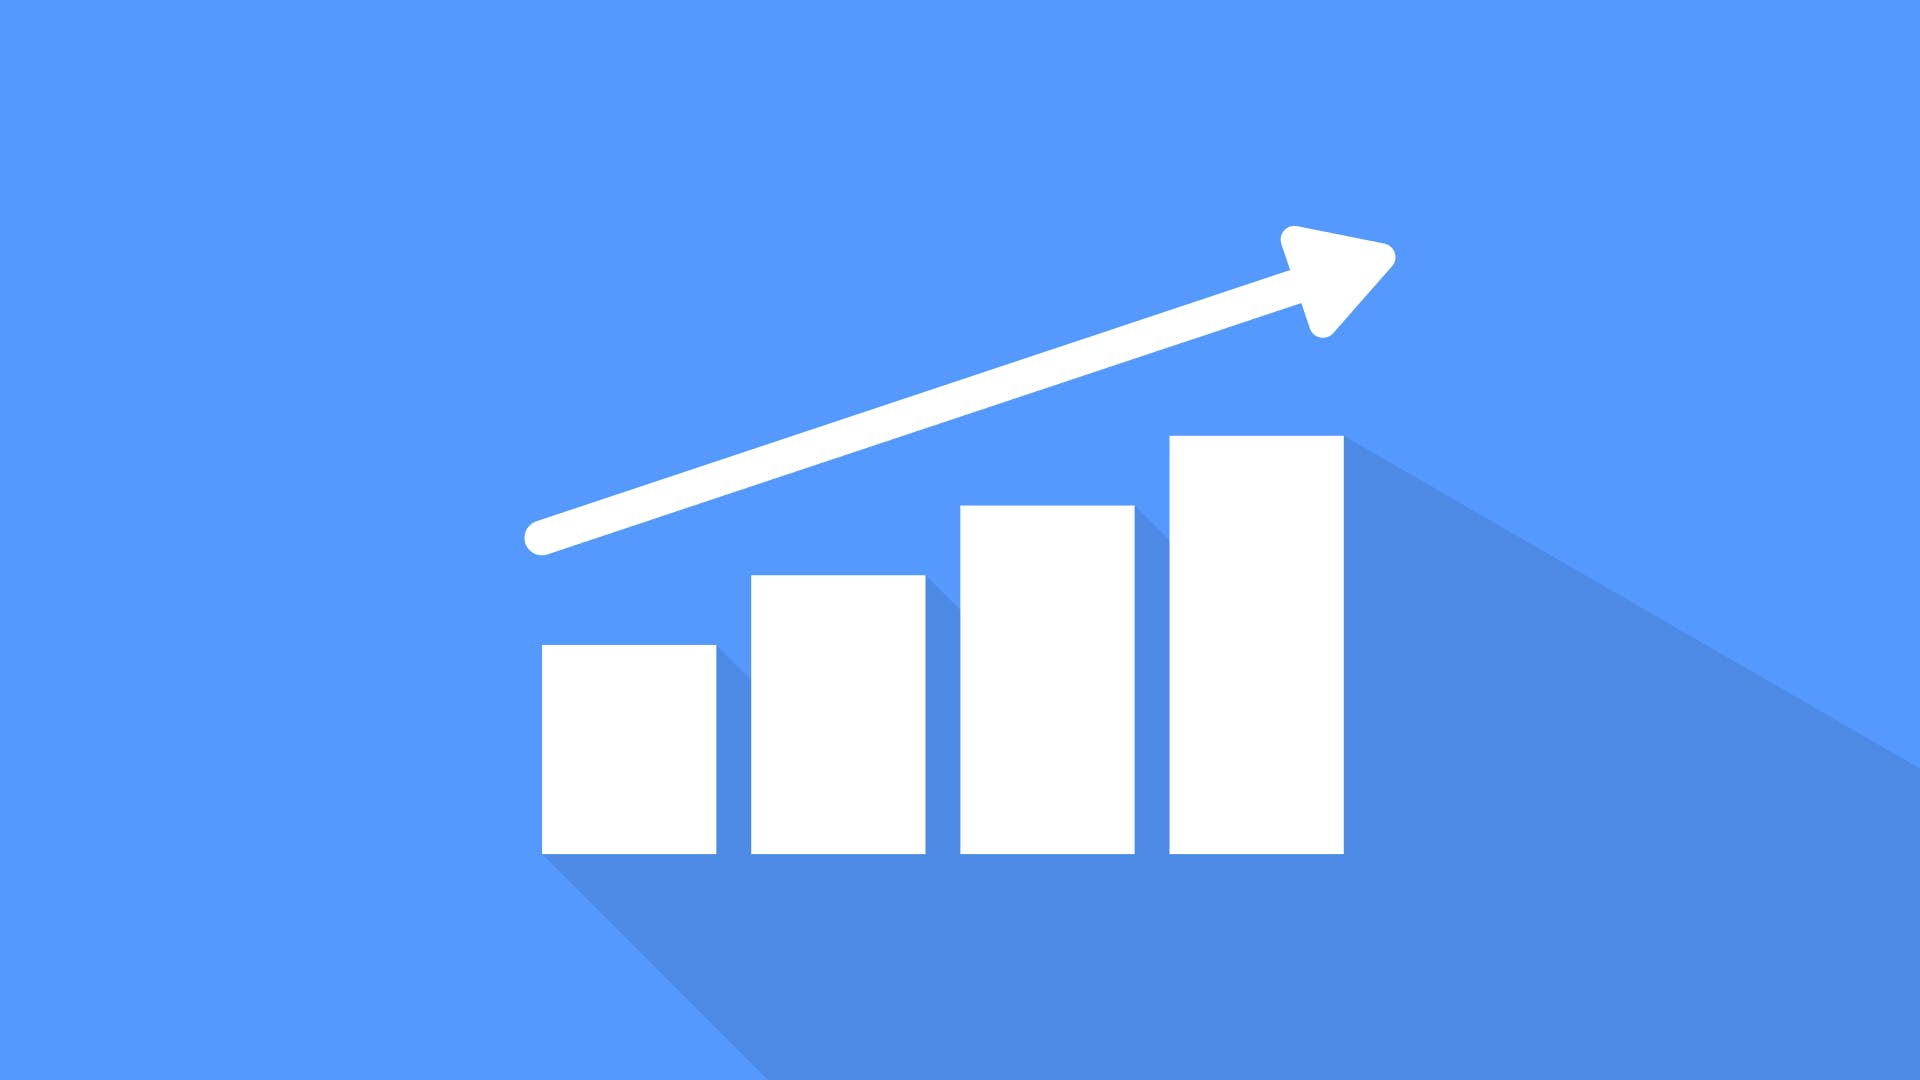 Measuring Promotional Product ROI